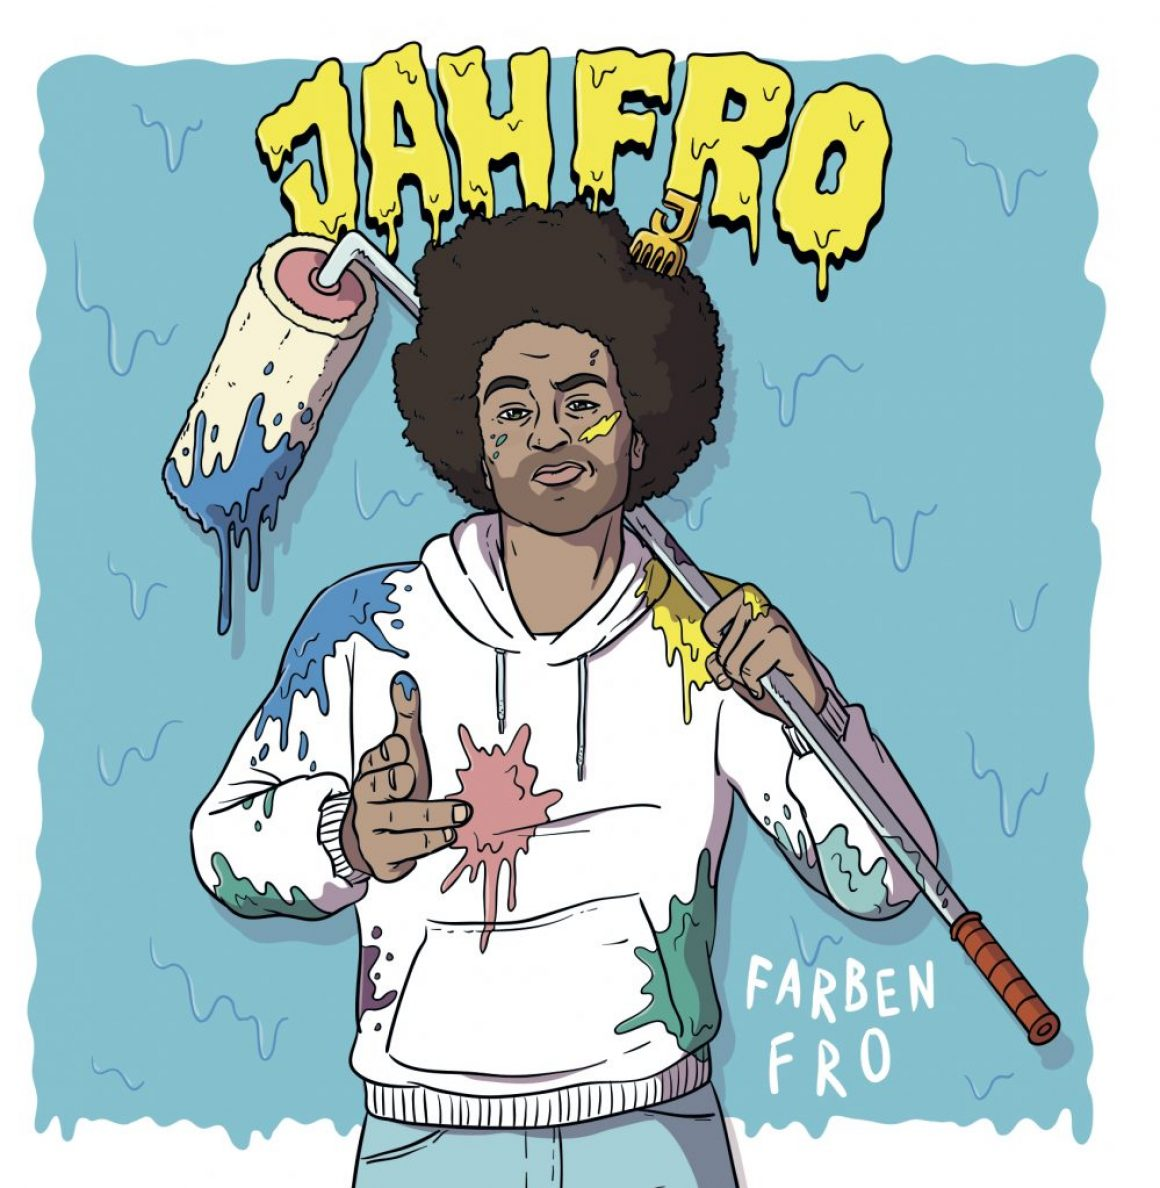 New Release: Jahfro – Farbenfro